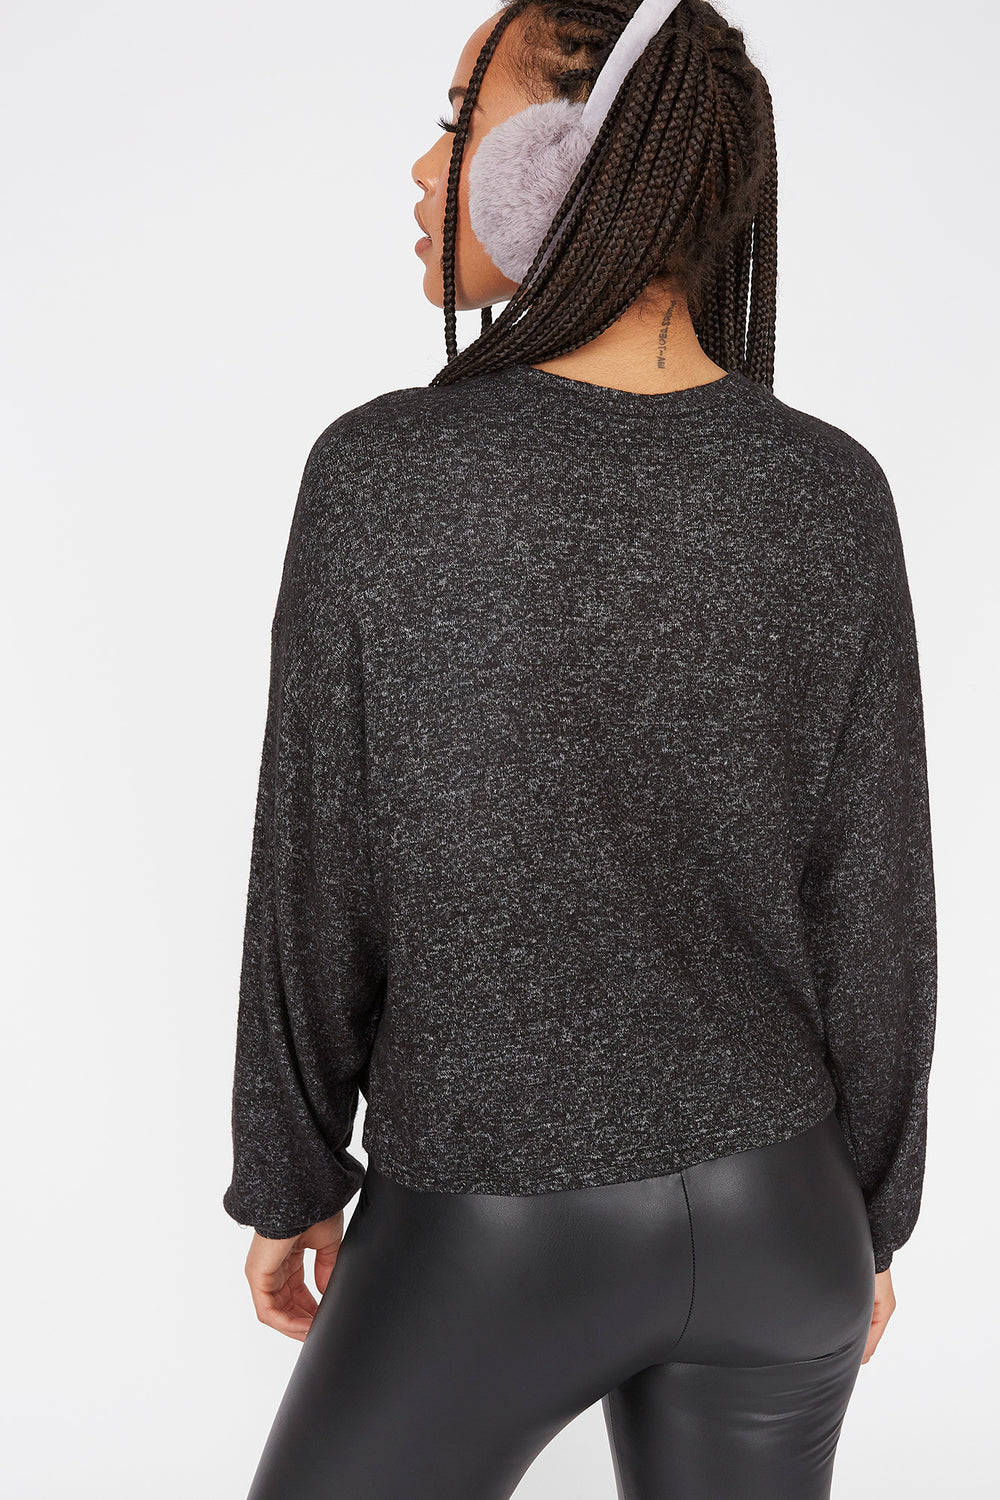 Relaxed Brushed Crew Neck Dolman Sleeve Top Charcoal